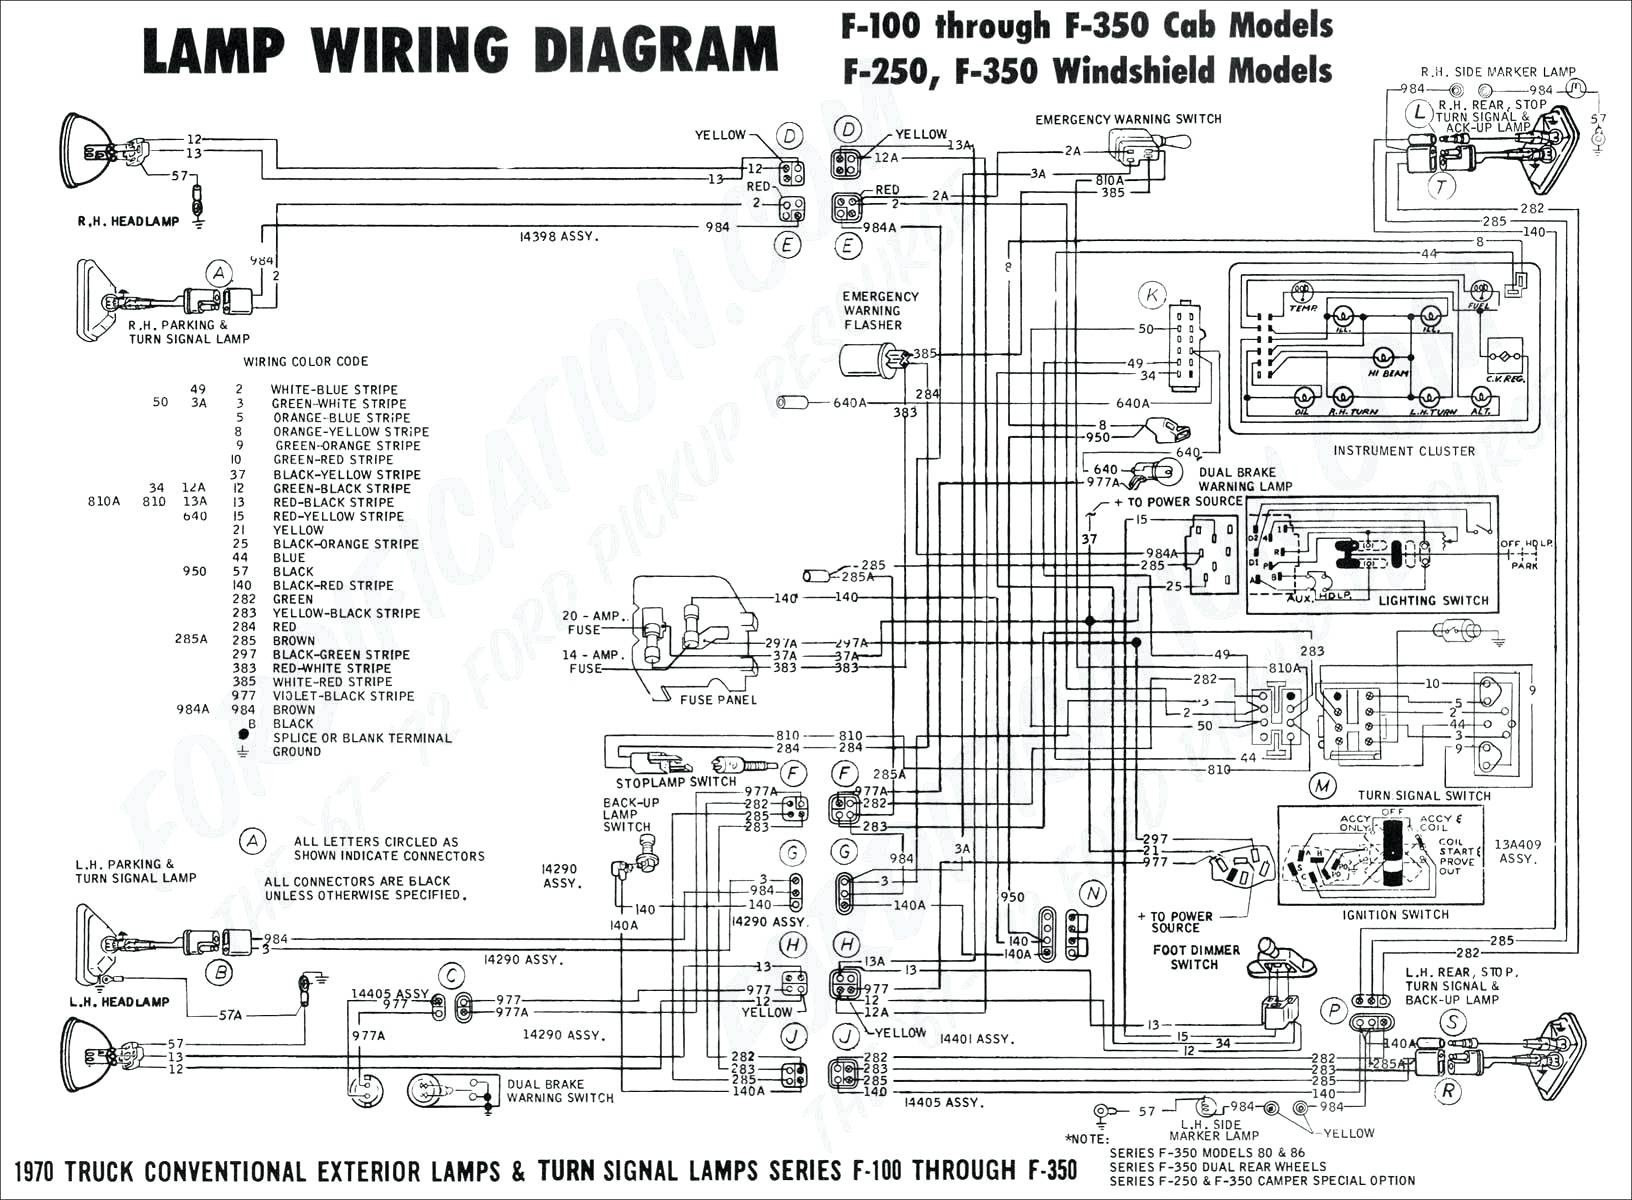 Mitsubishi L200 Engine Diagram Mymopar Wiring Diagrams Wiring Diagram for You Of Mitsubishi L200 Engine Diagram